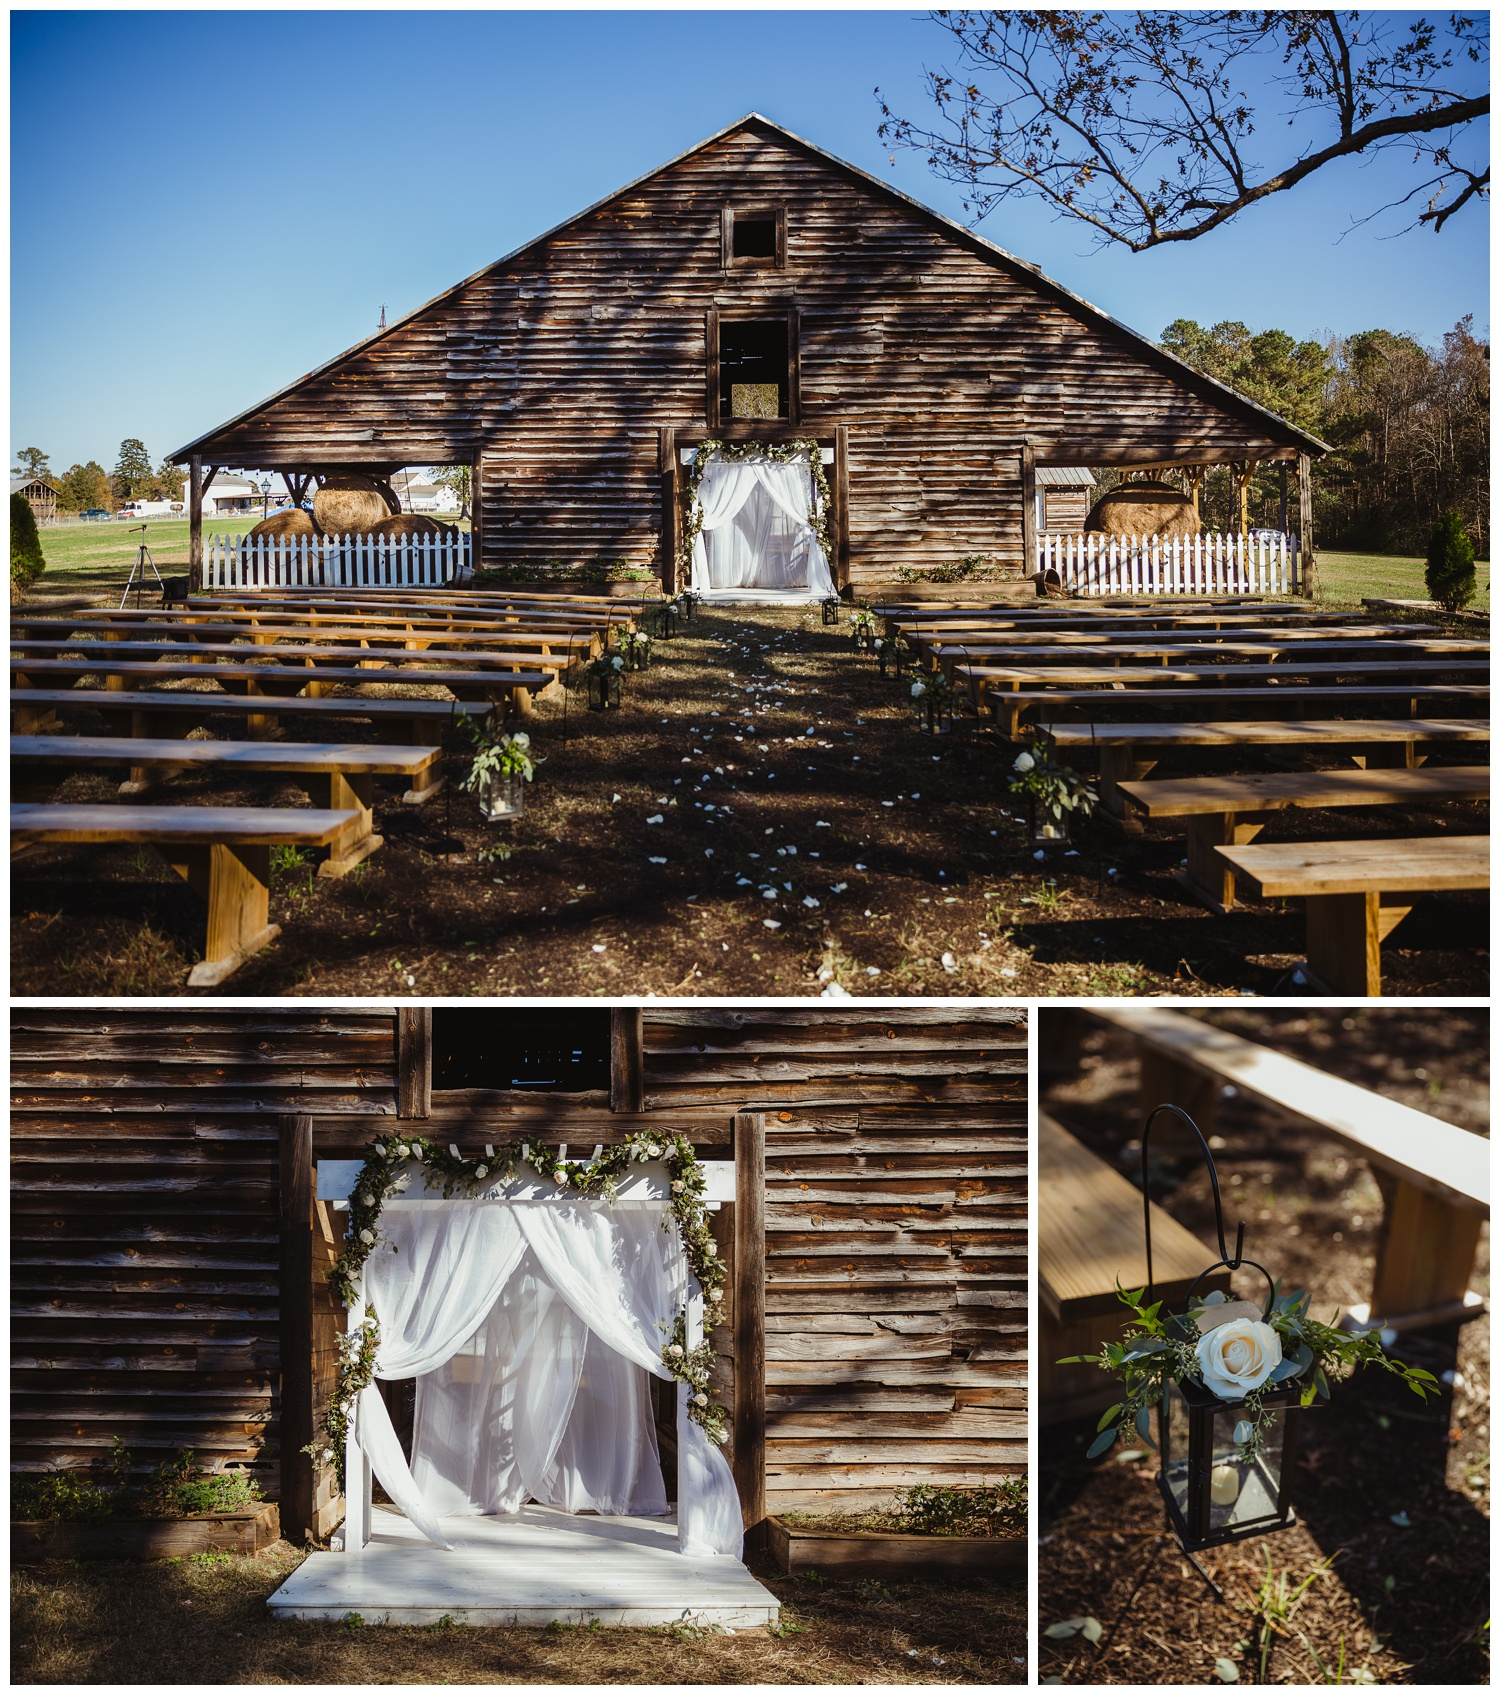 The Warren Estate has a beautiful barn set up for a wedding ceremony, images by Rose Trail Images of Rolesville, NC.